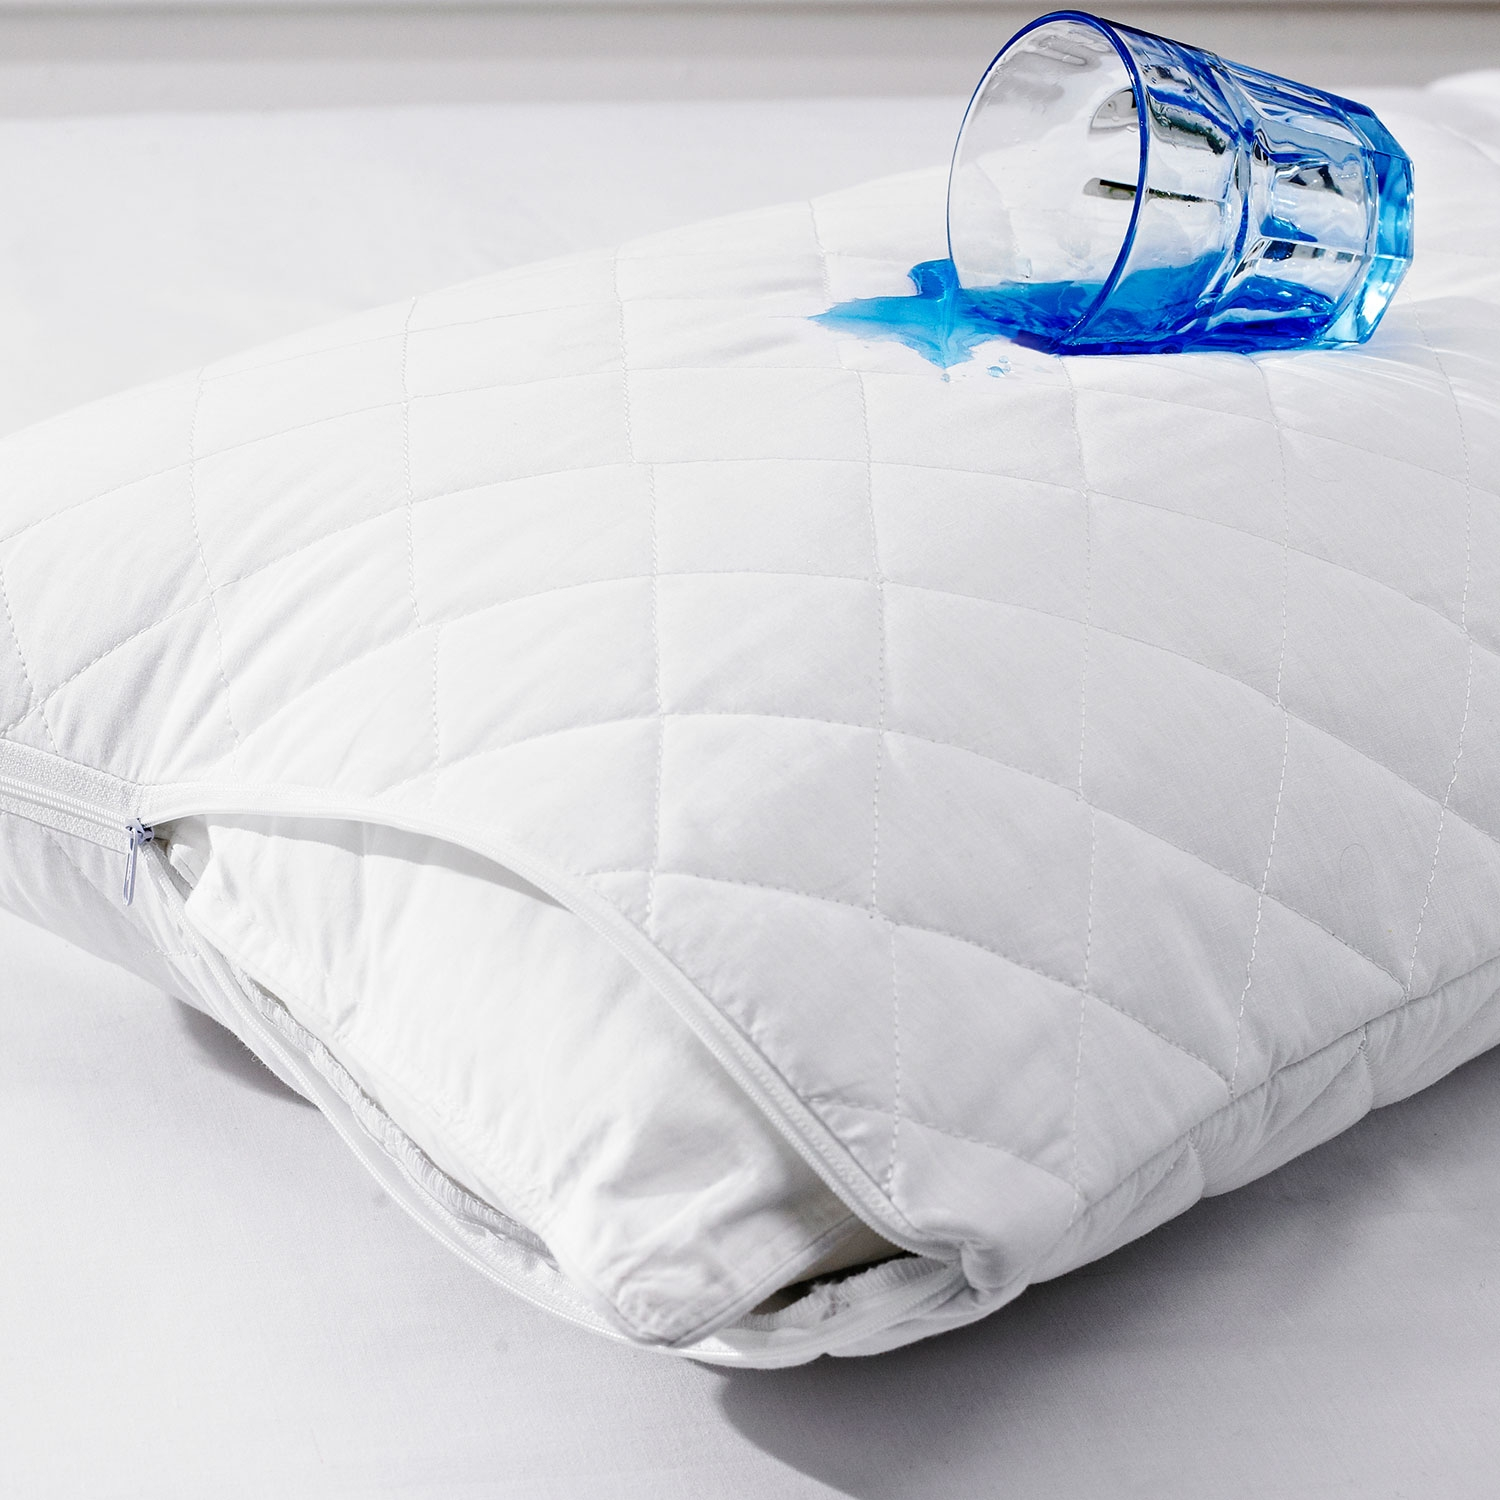 Quilted-pillow-protector-waterproof.jpg